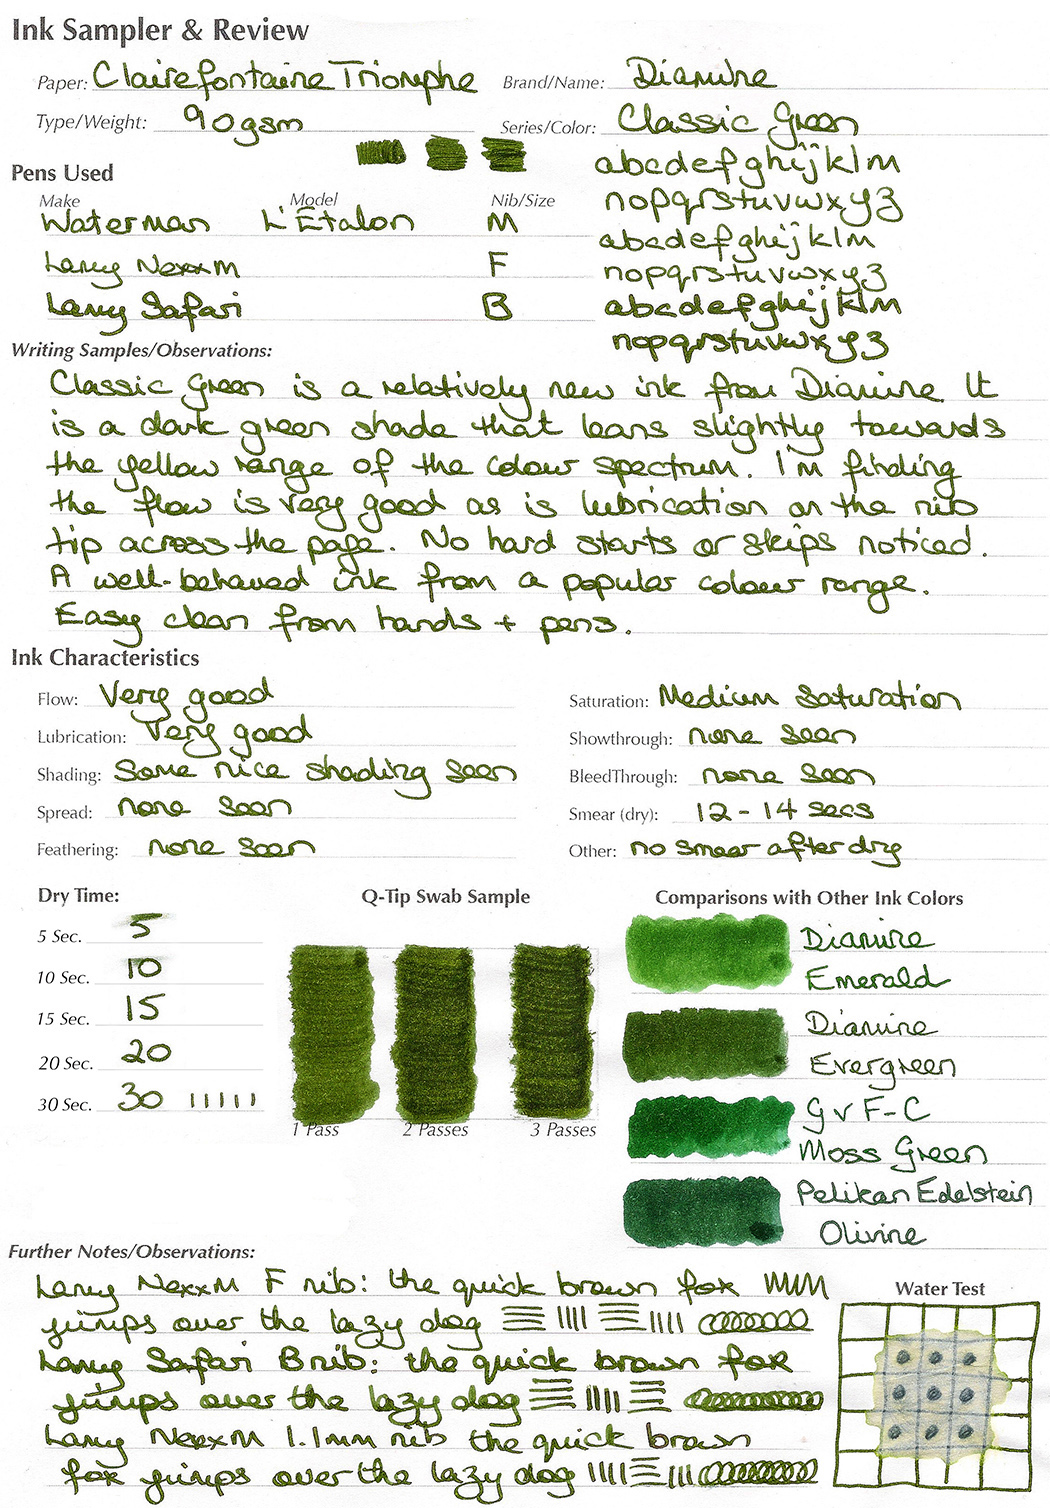 Diamine Classic Green ink review